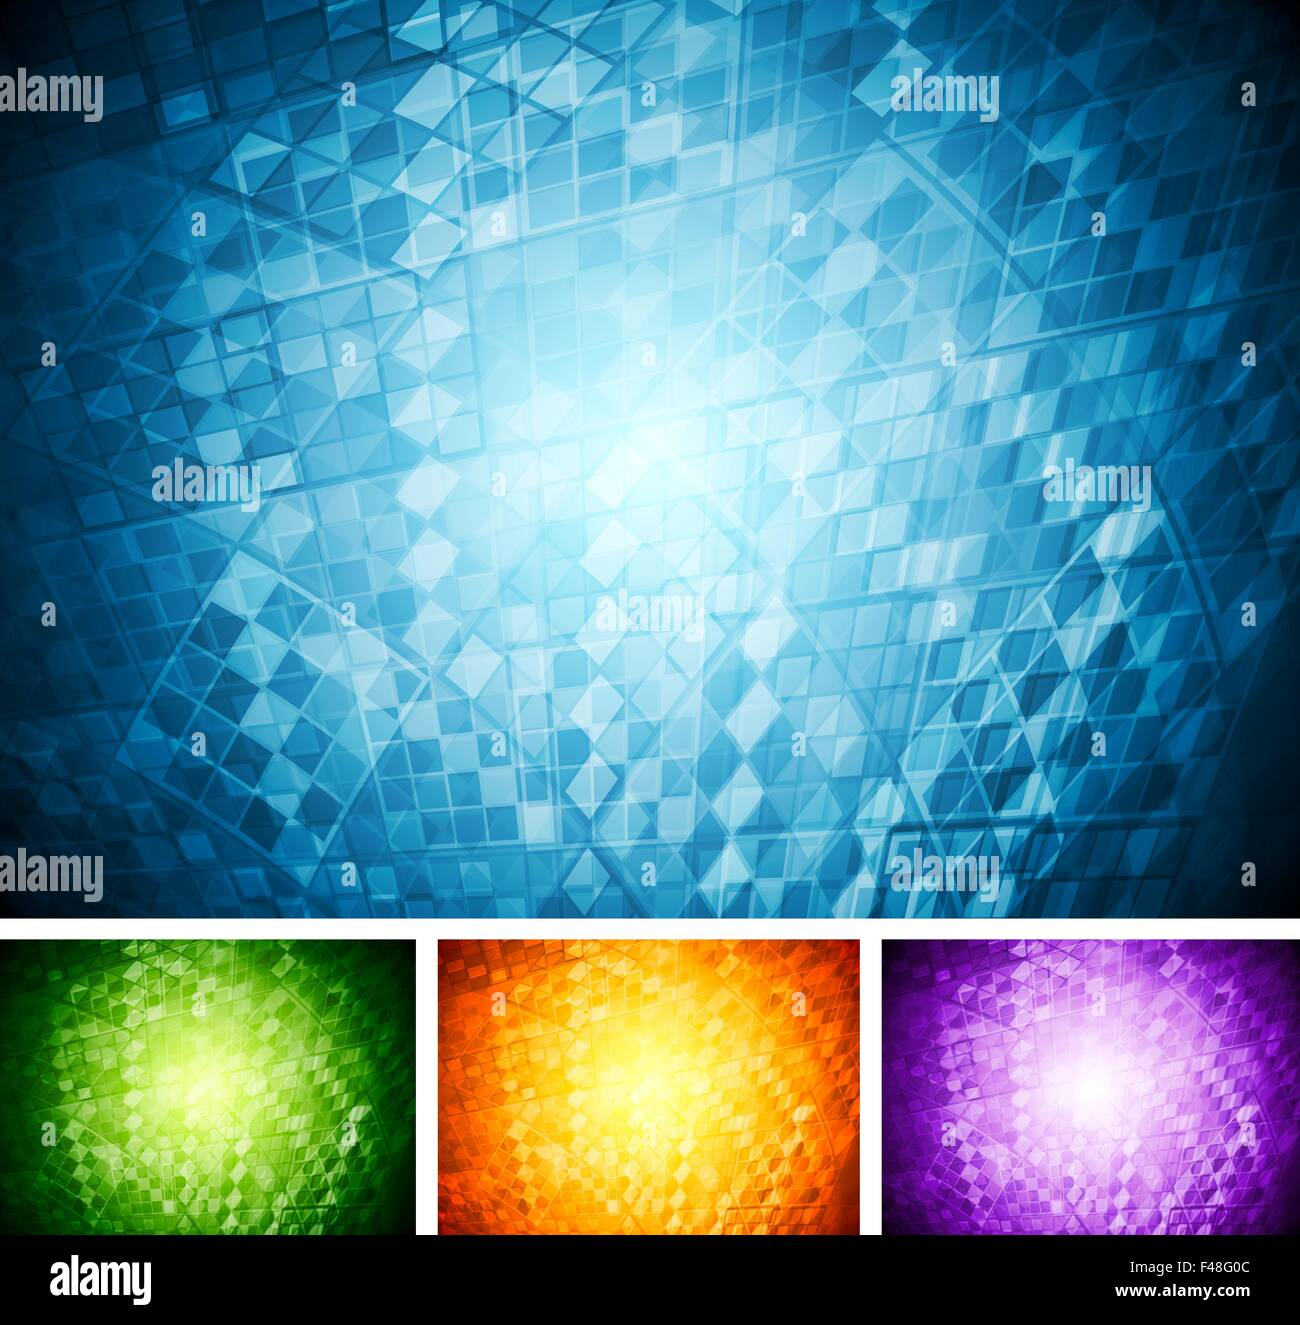 Abstract backgrounds tech Photo Stock